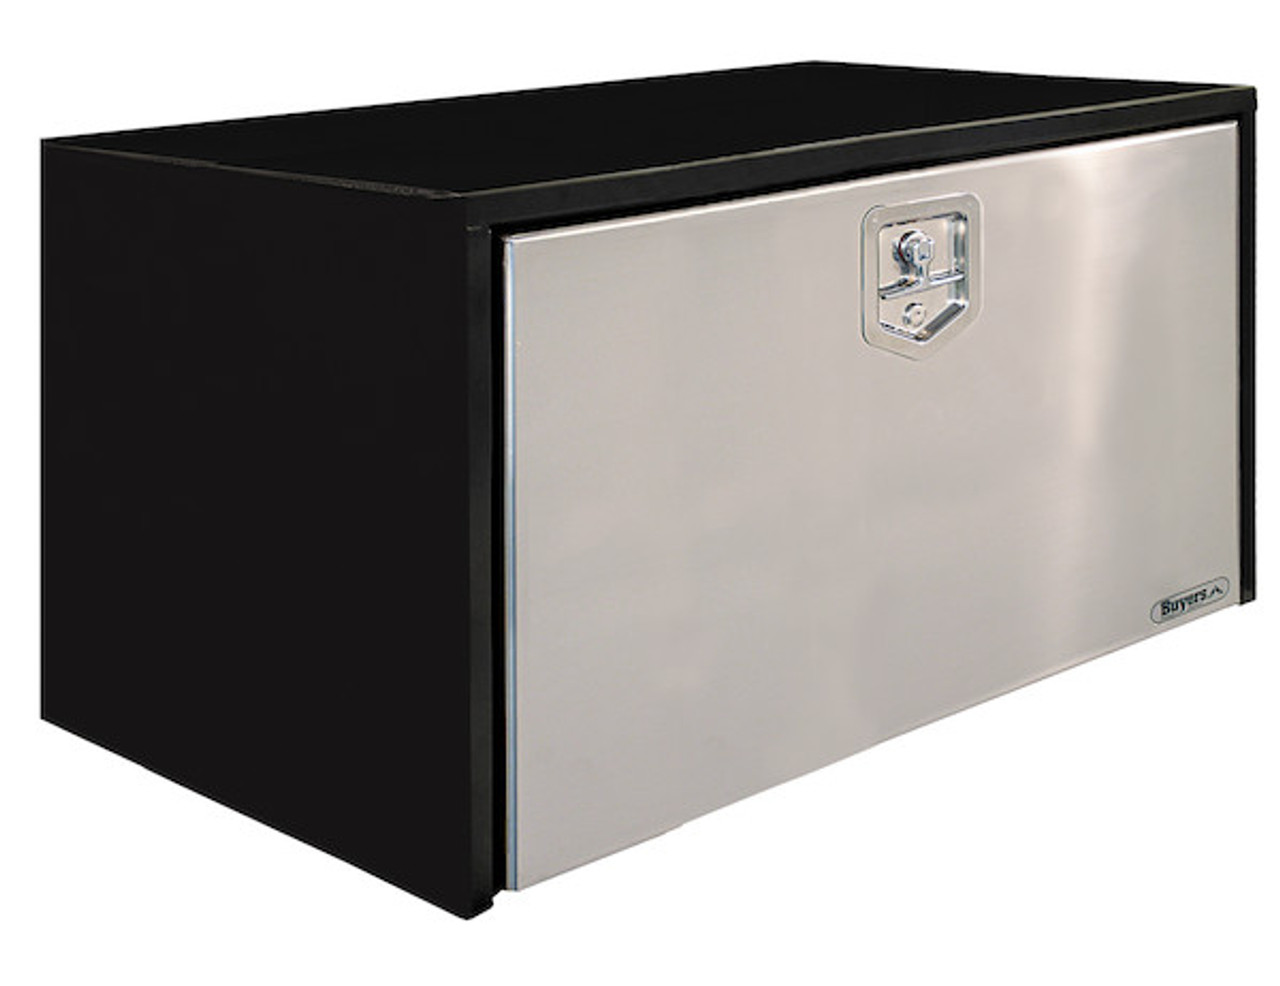 """1704705 BUYERS PRODUCTS BLACK STEEL UNDERBODY TRUCK TOOLBOX WITH STAINLESS STEEL DOOR 24""""HX24""""DX36""""W"""